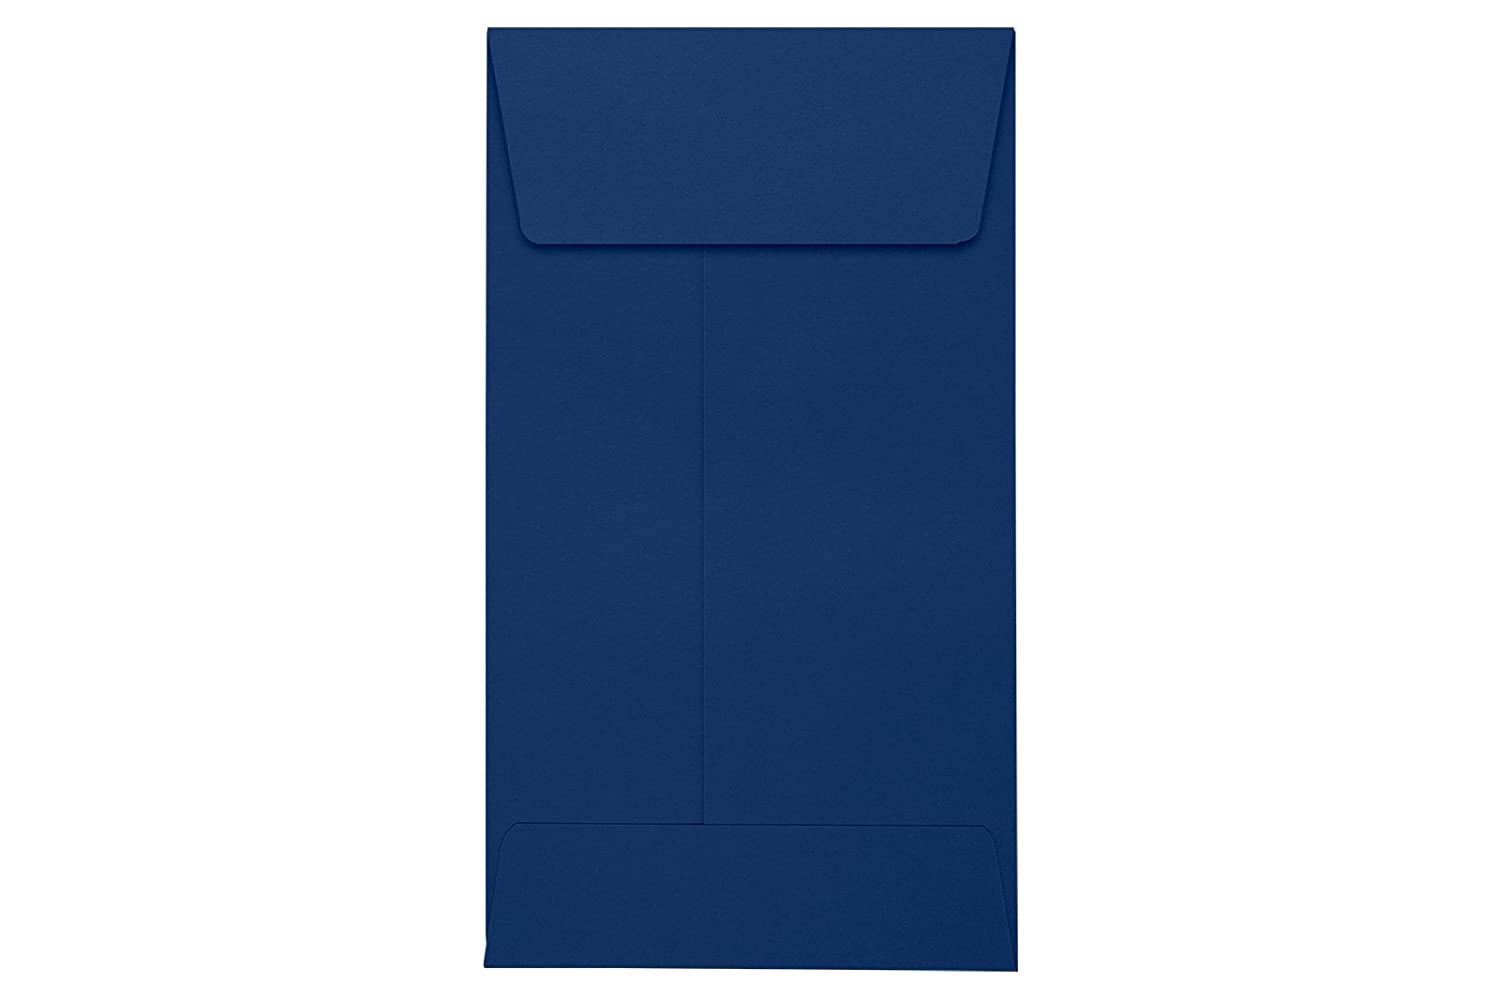 #5 1/2 Coin Envelopes (3 1/8 x 5 1/2) - Navy (50 Qty.) | Perfect for storing Small Parts, Coins, Jewelry, Stamps, Seeds, Small Electronic Parts and so much more! | LUX-512CO-103-50 Envelopes.com Variation